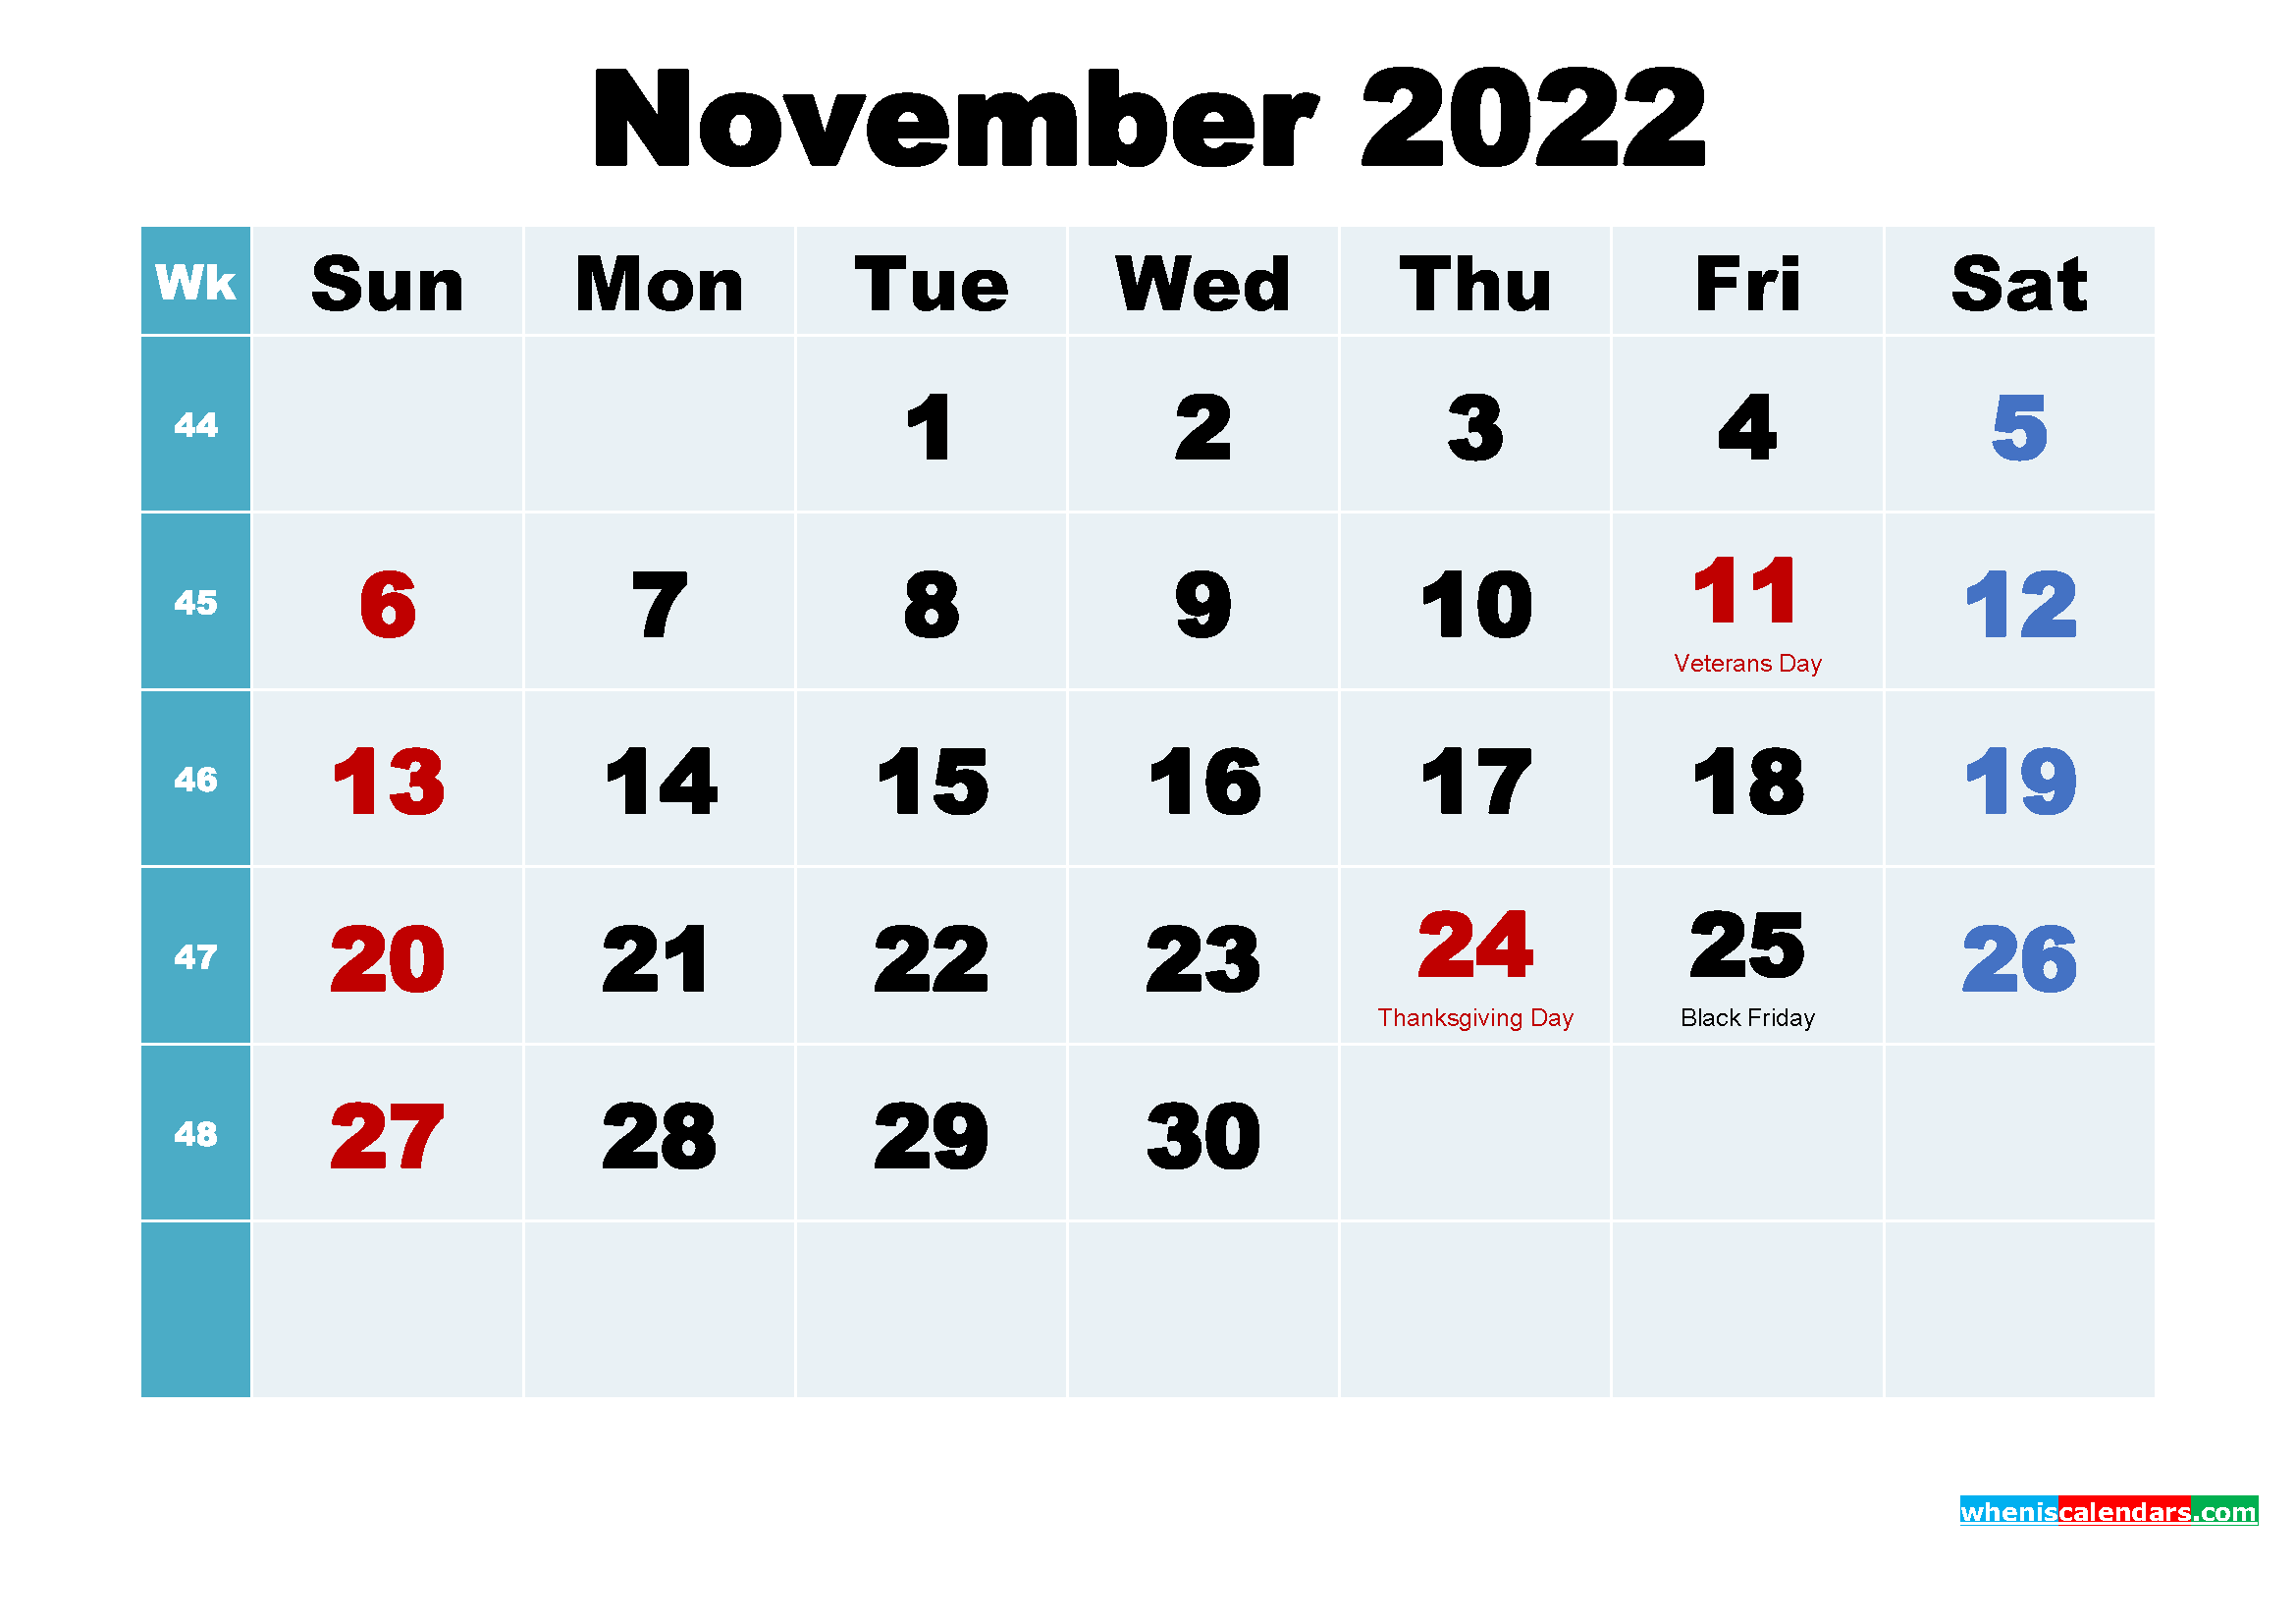 November 2022 Calendar with Holidays Printable